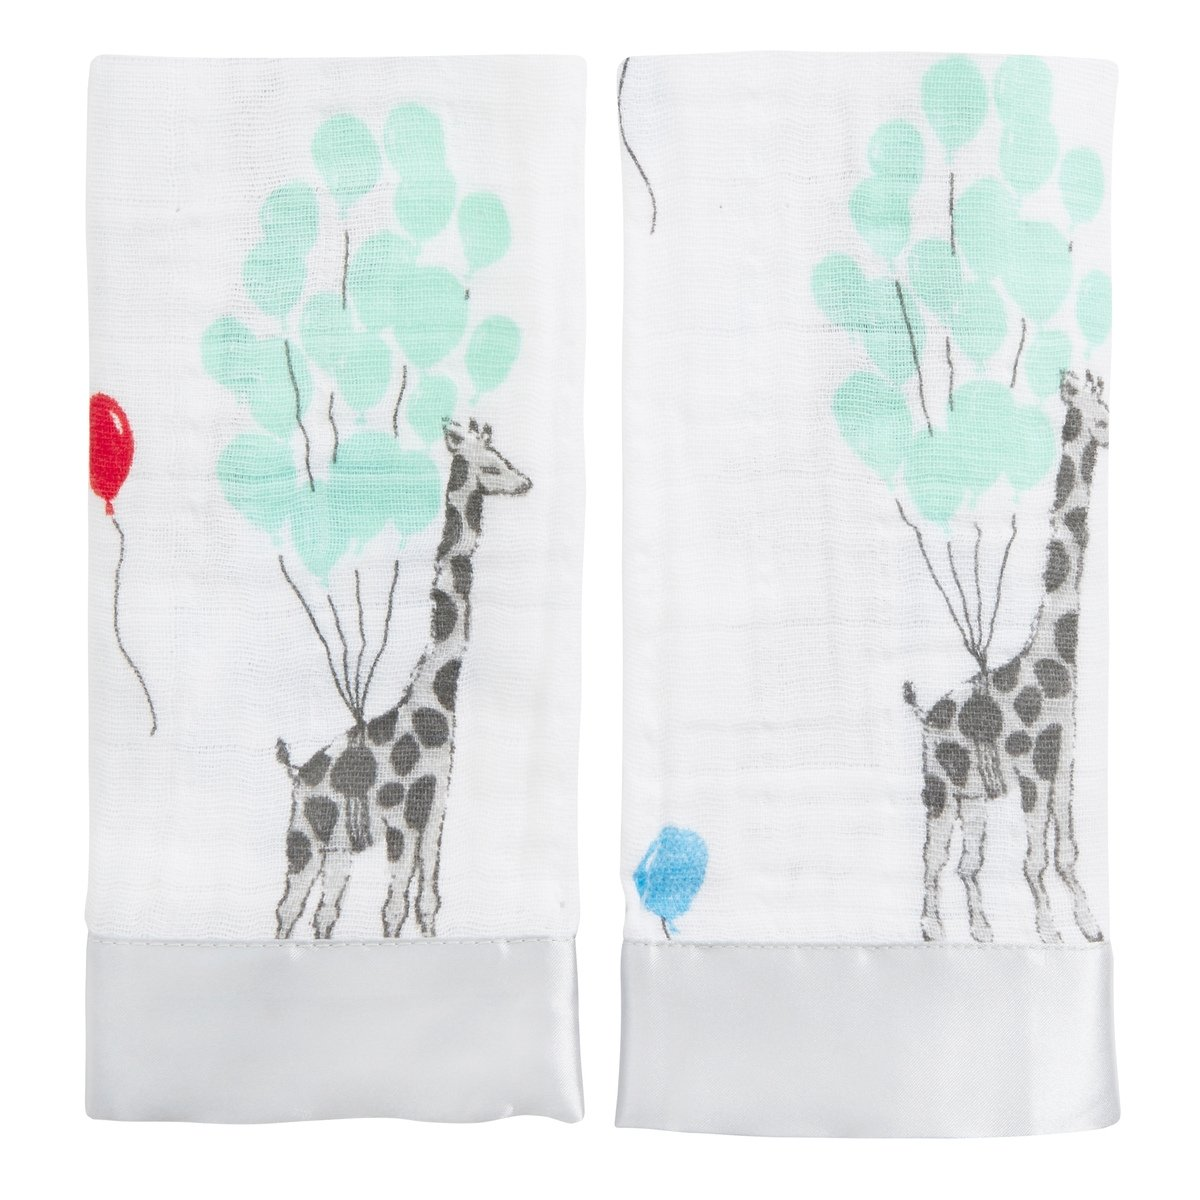 aden + anais issie security blanket, 100% cotton muslin with satin trim, 40cm X 40cm, 2 pack, dream ride Aden and Anais 7518G